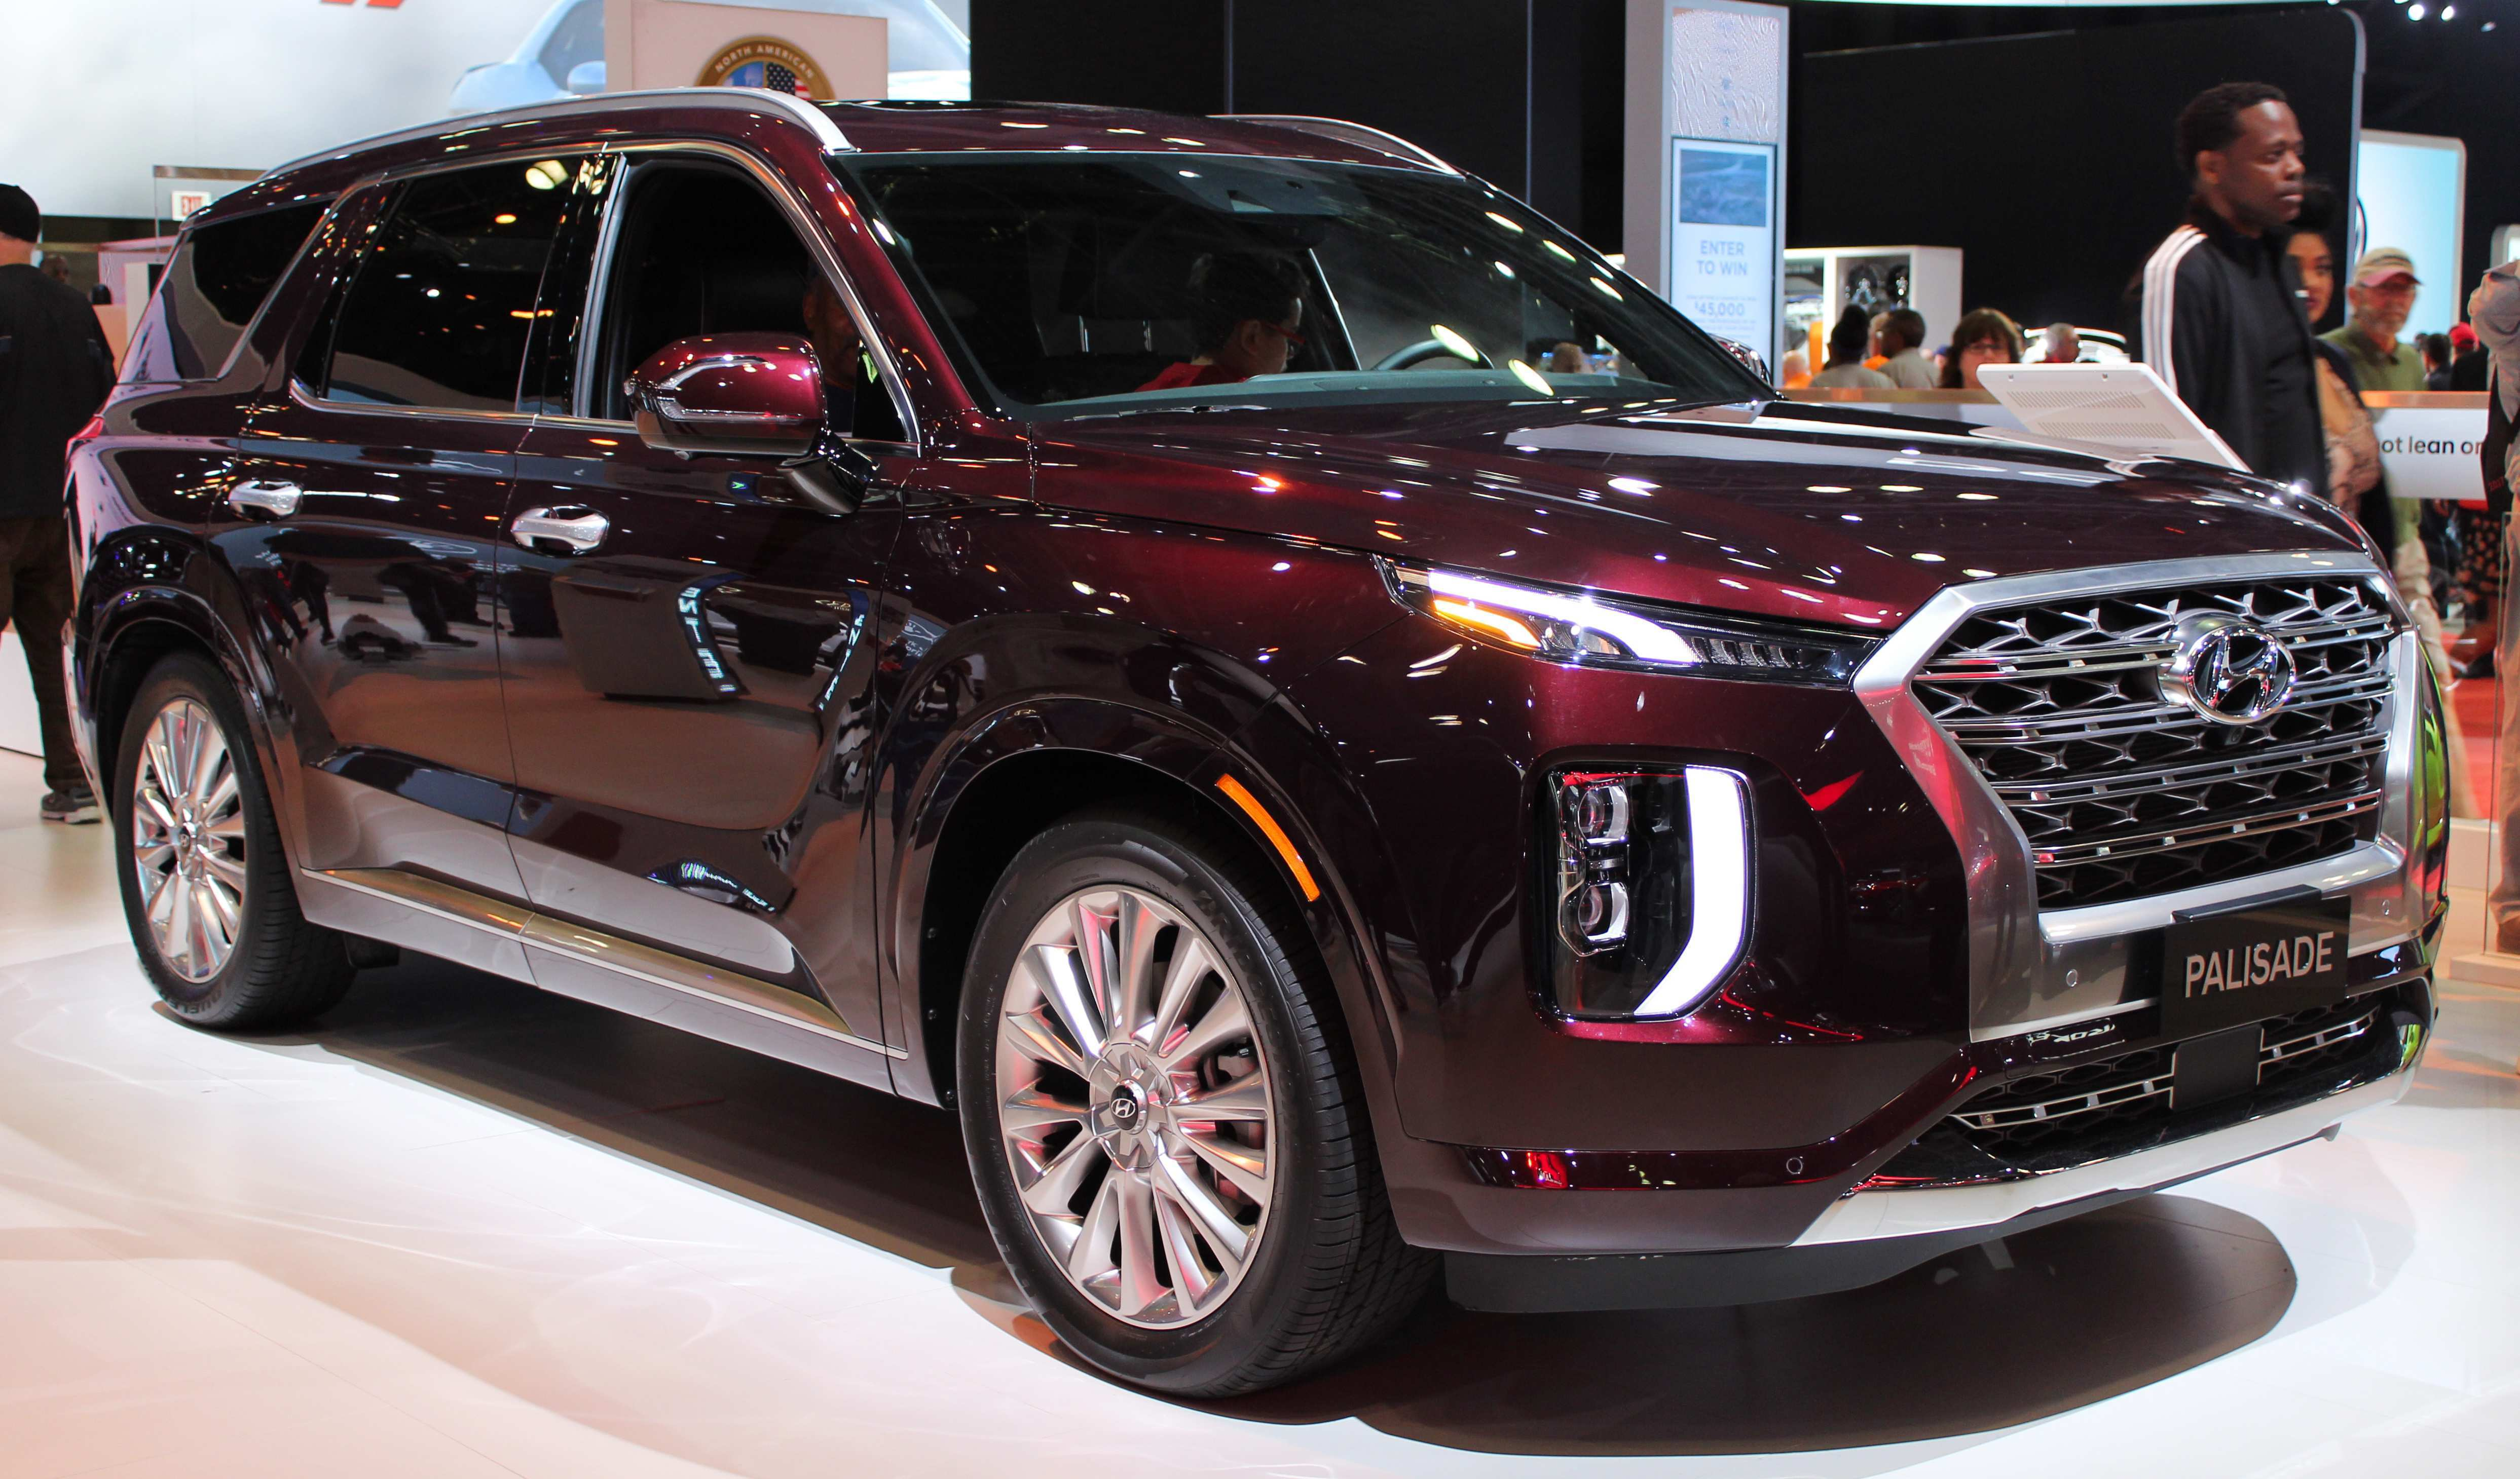 19 All New When Will The 2020 Hyundai Palisade Be Available Pictures